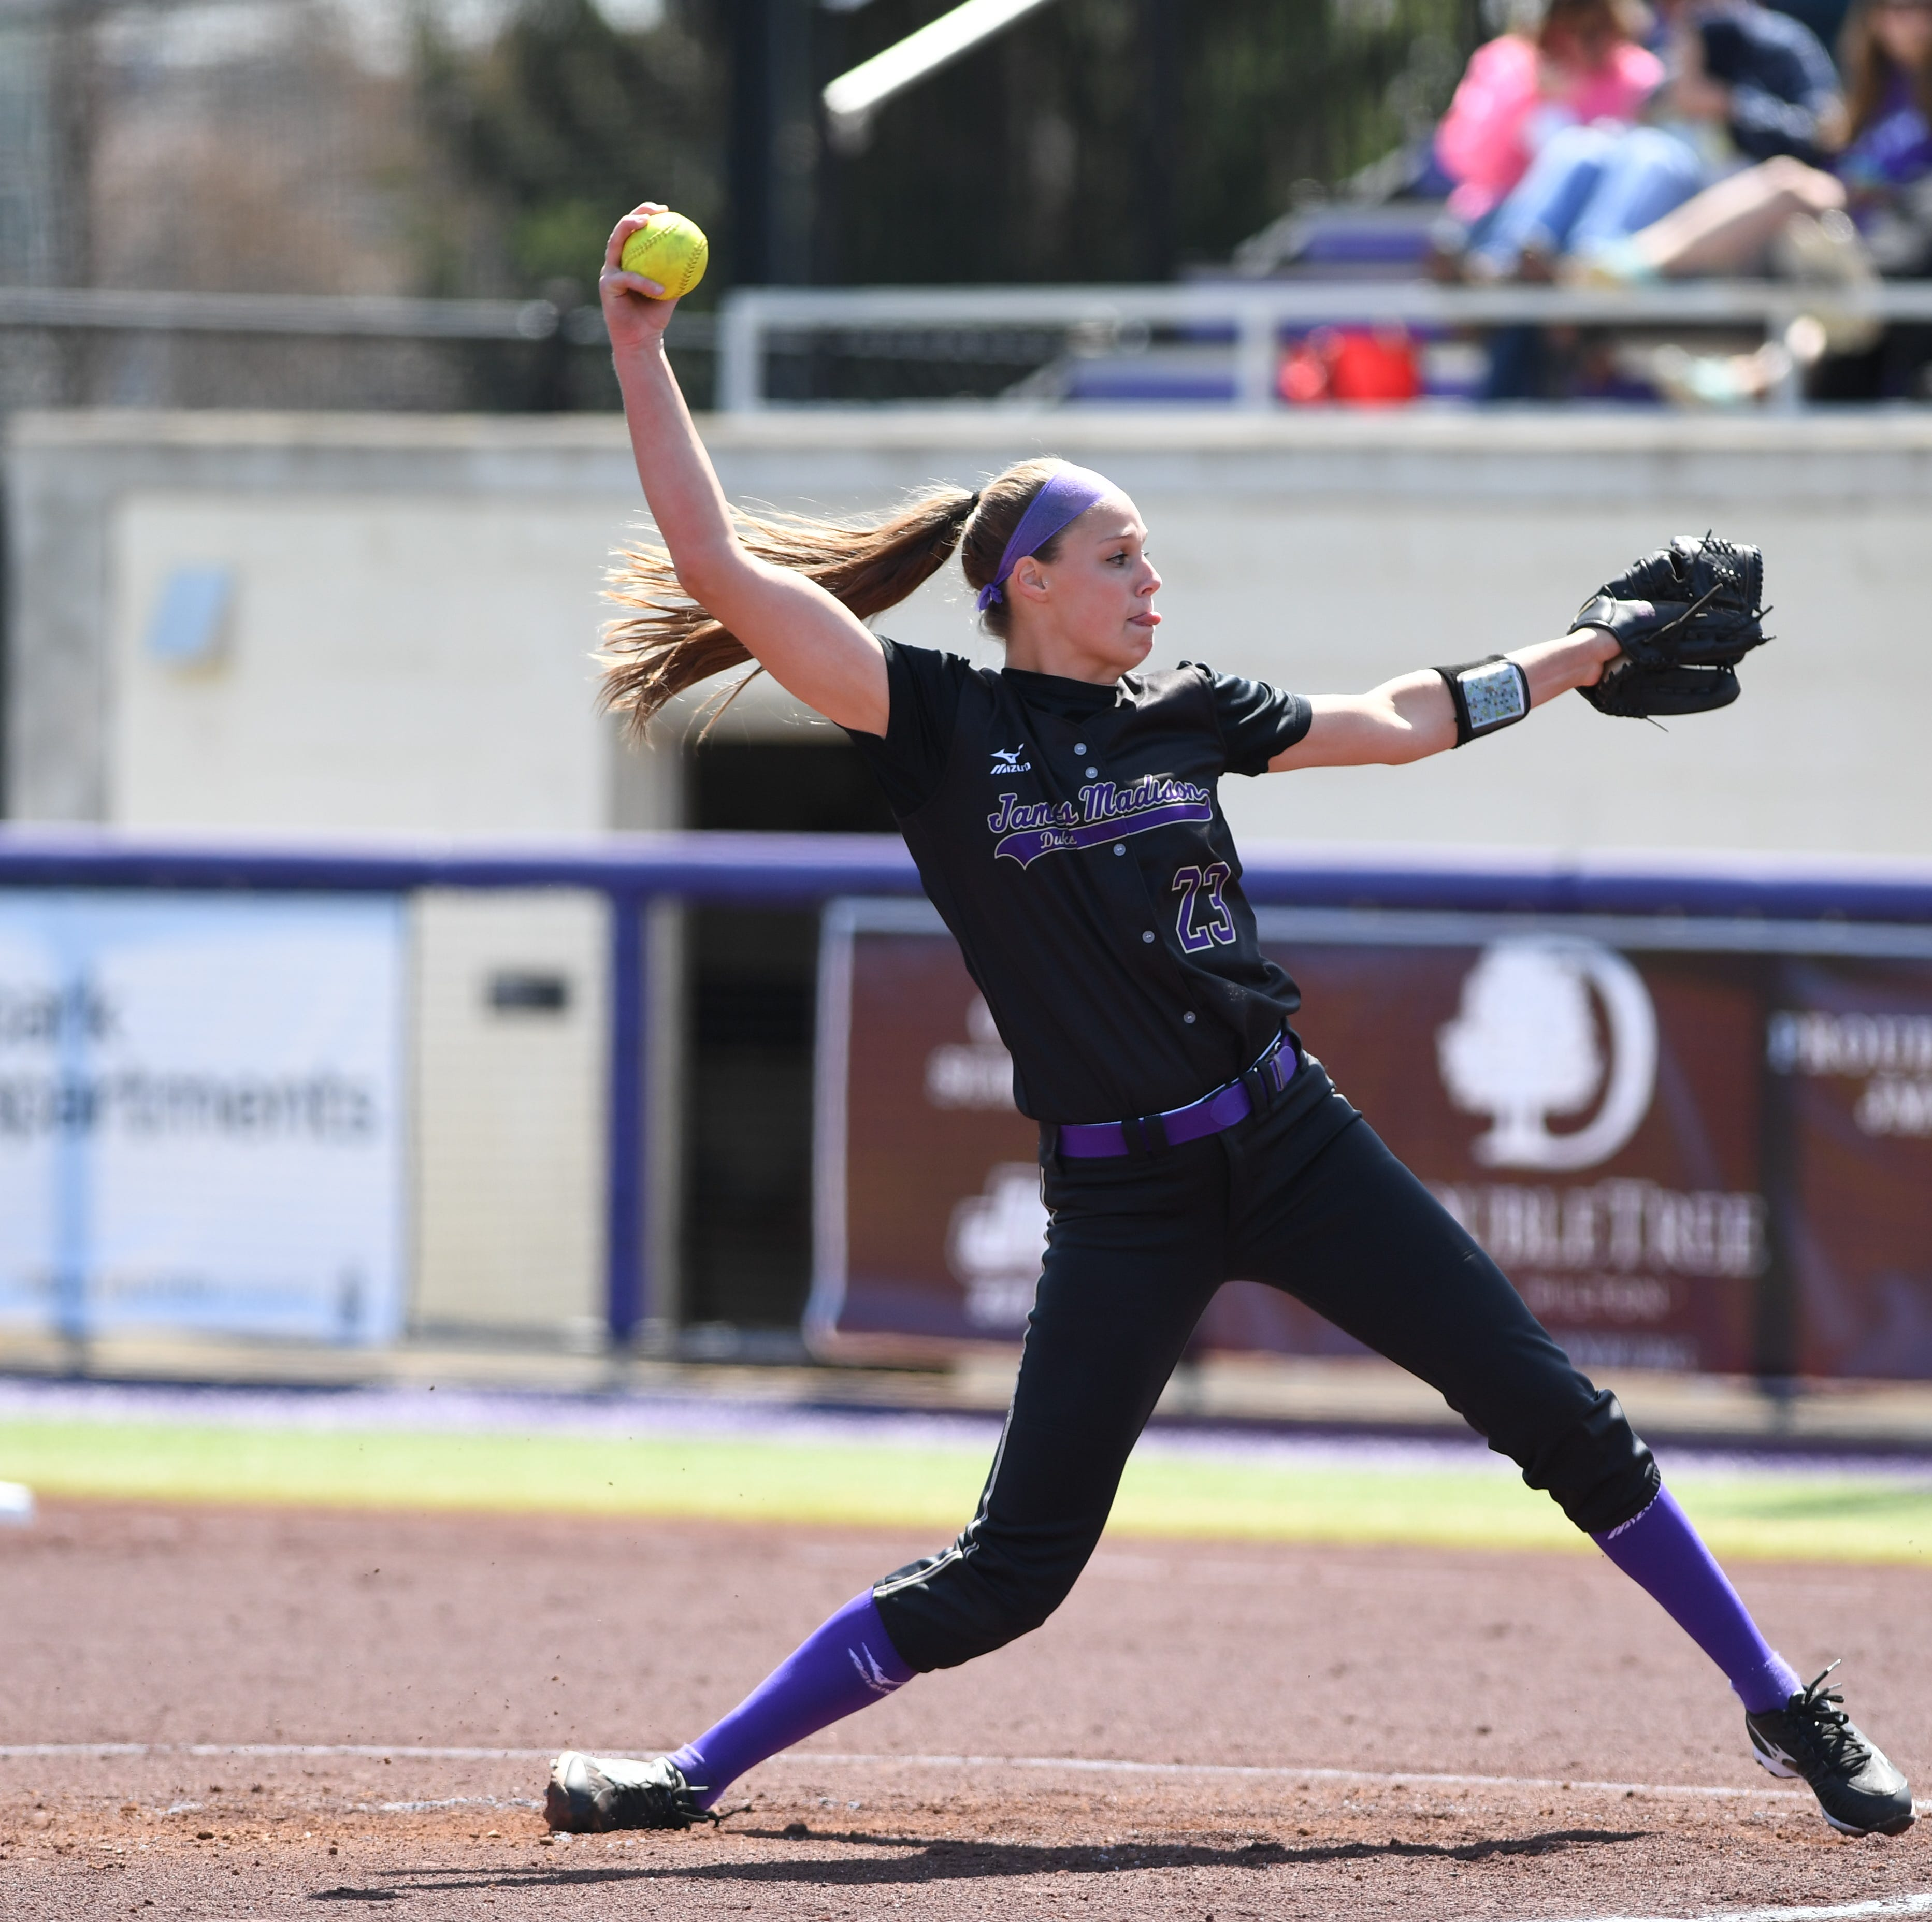 Megan Good, JMU softball headed to Los Angeles